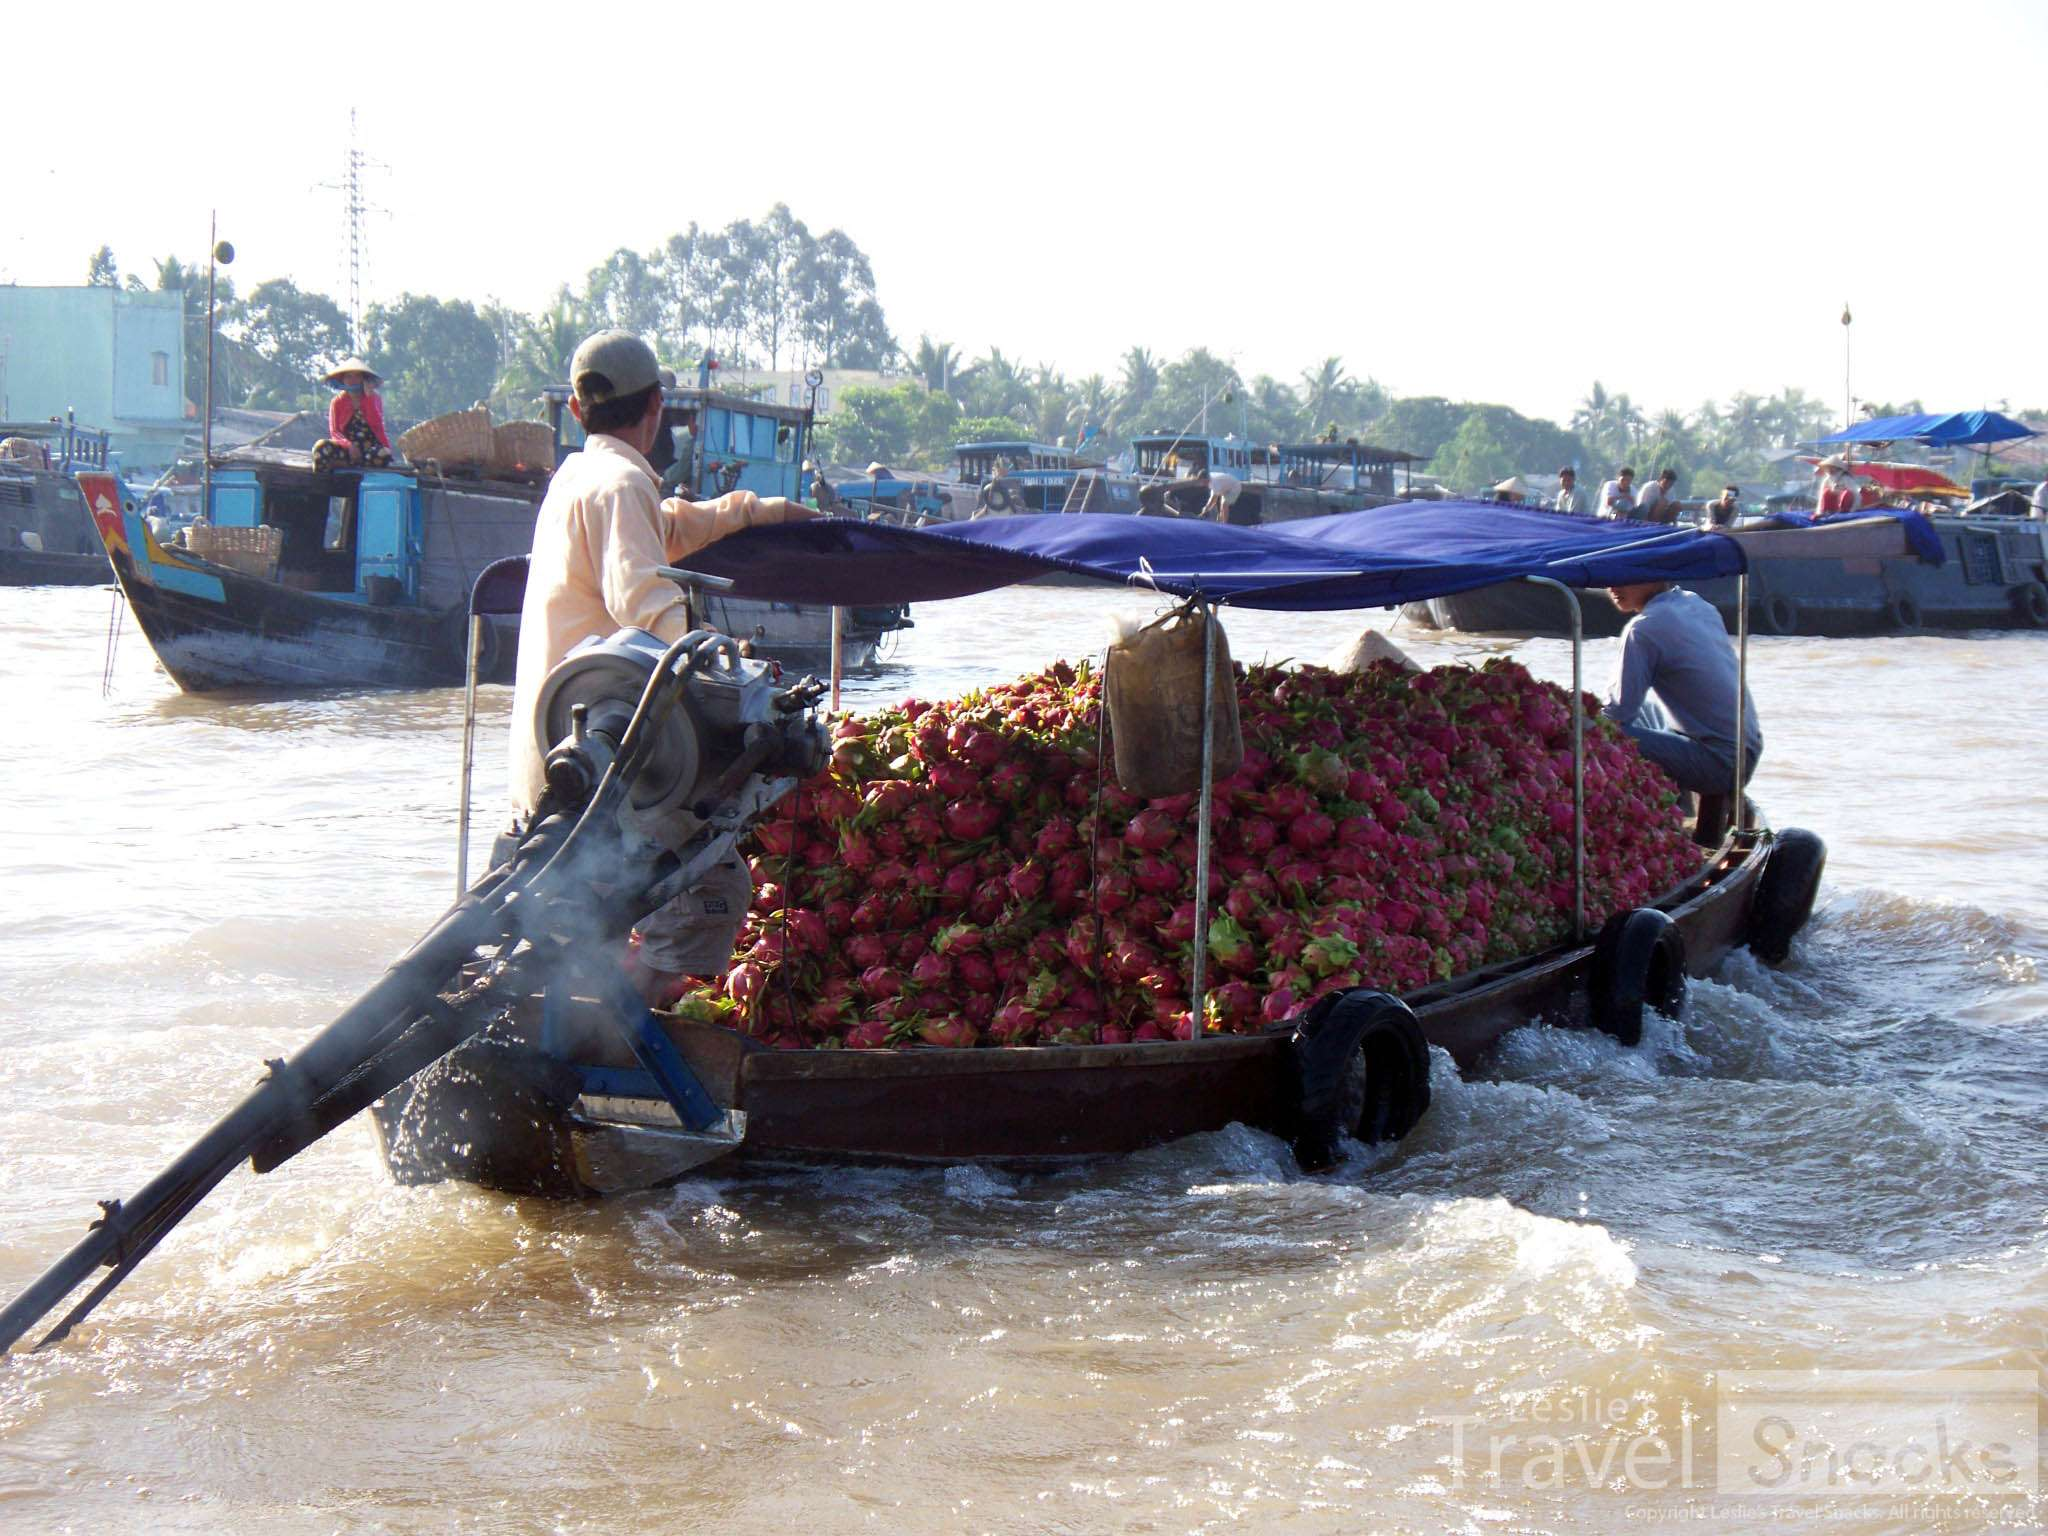 Boat full of dragon fruit.